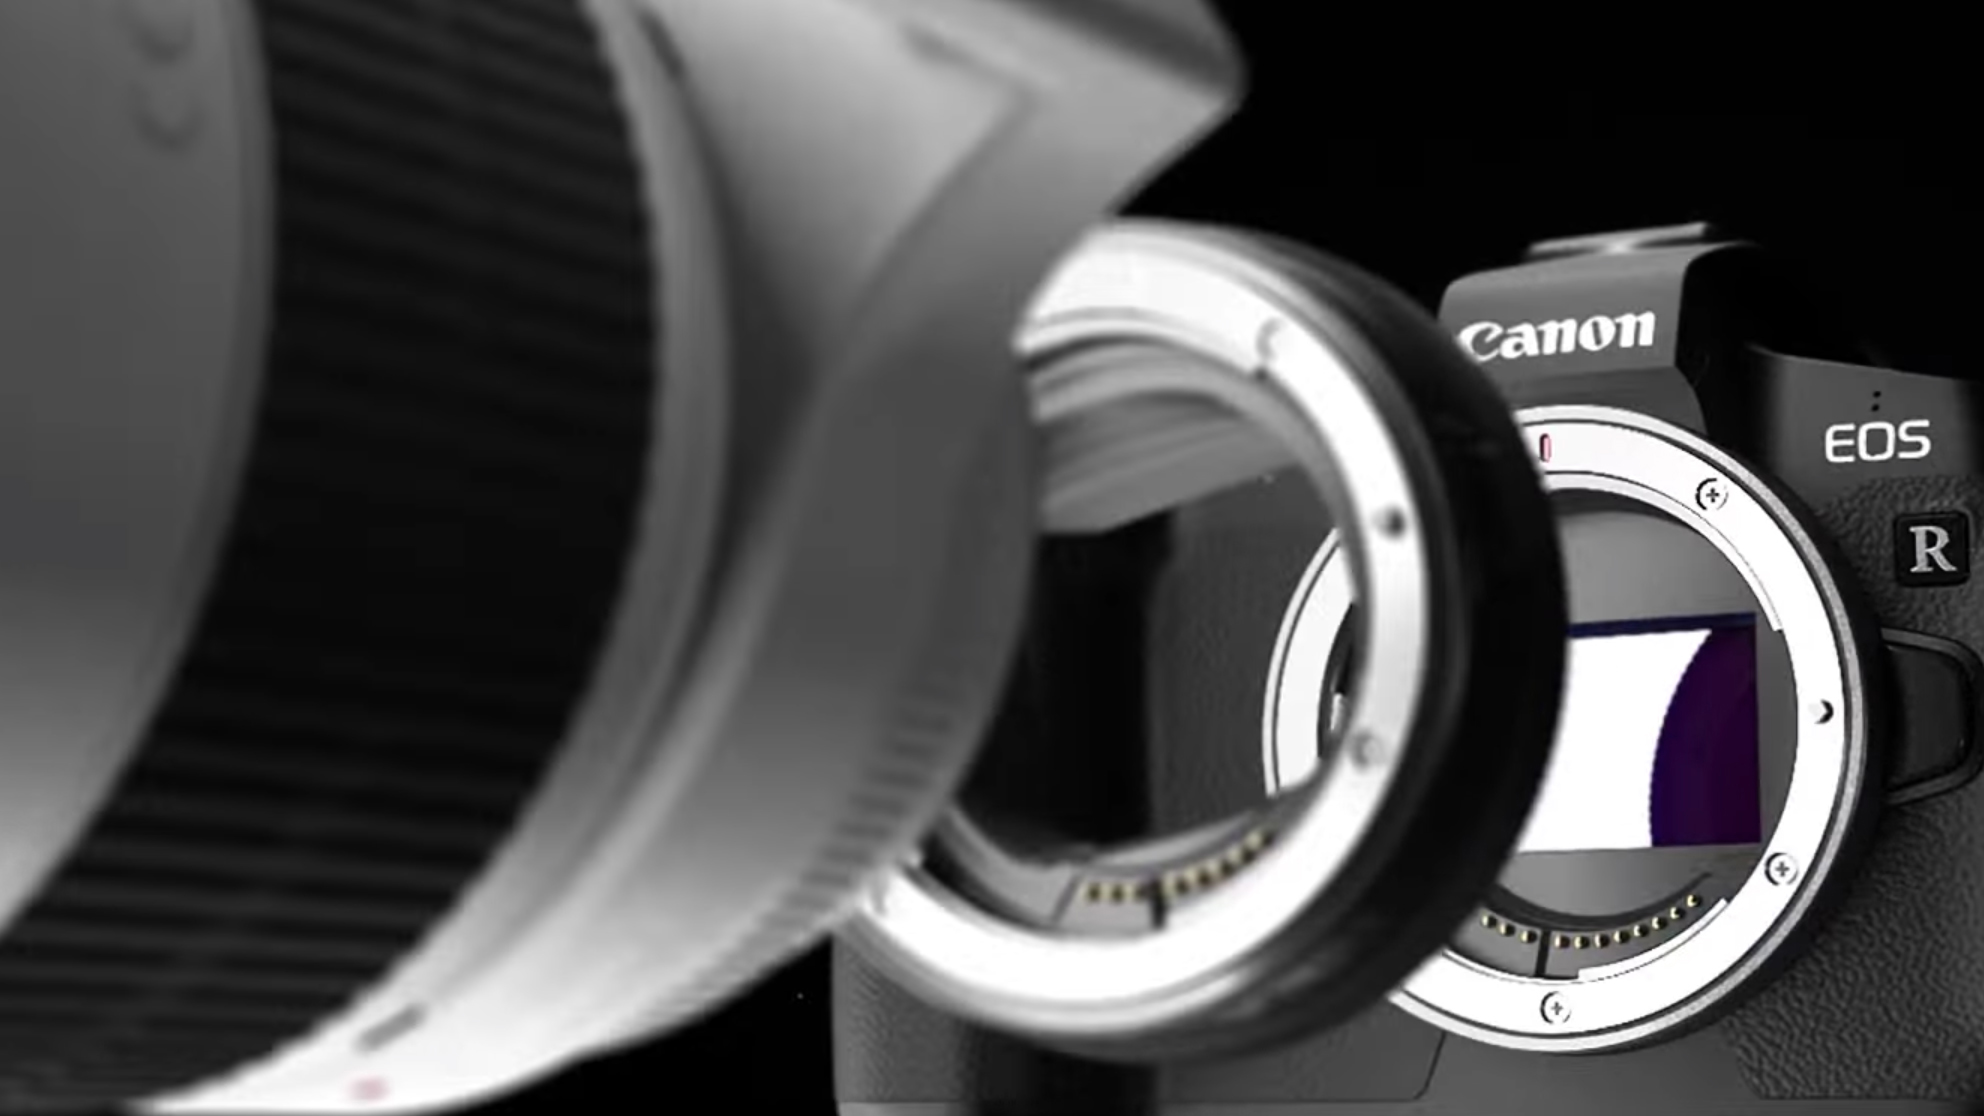 Fresh rumors that Canon will release a pro-level EOS R